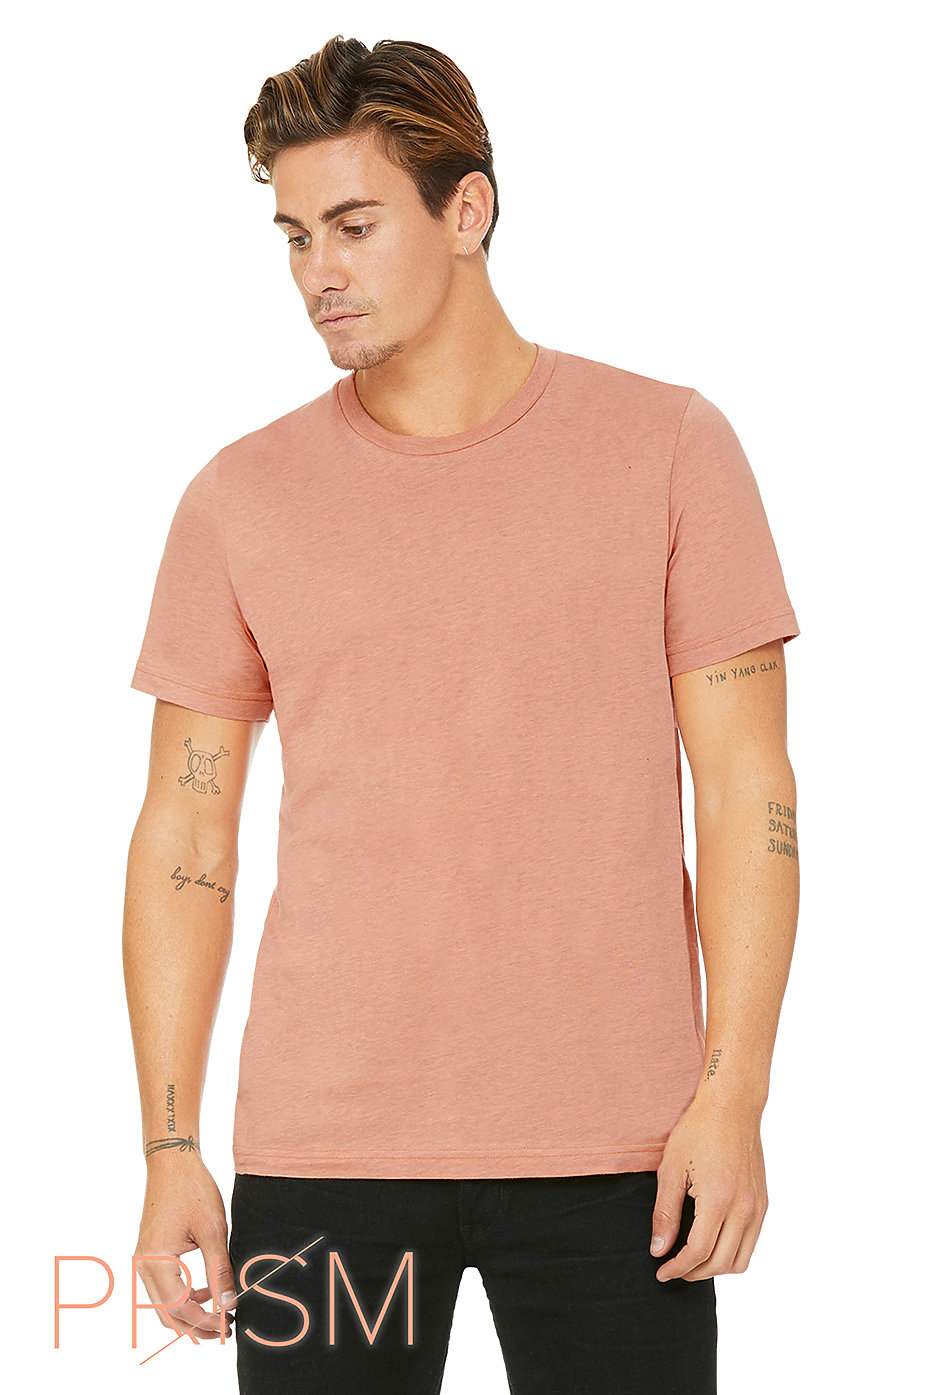 Bella Canvas 3001 UNISEX JERSEY SHORT SLEEVE TEE NWOT FIRST QUALITY